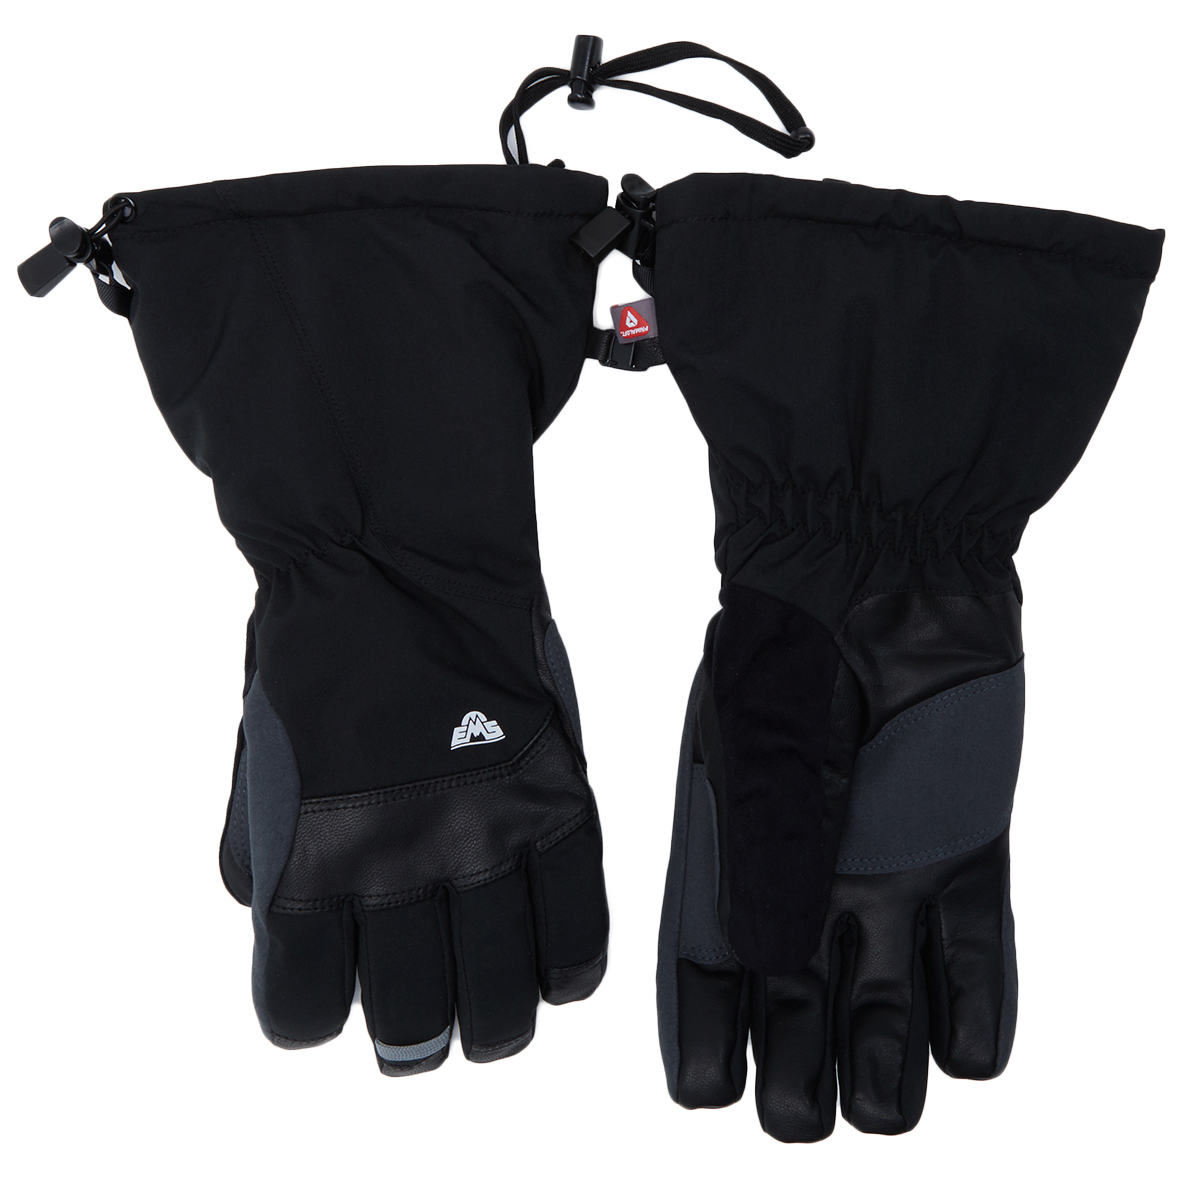 Ems Men's Ascent Summit Gloves - Black, M